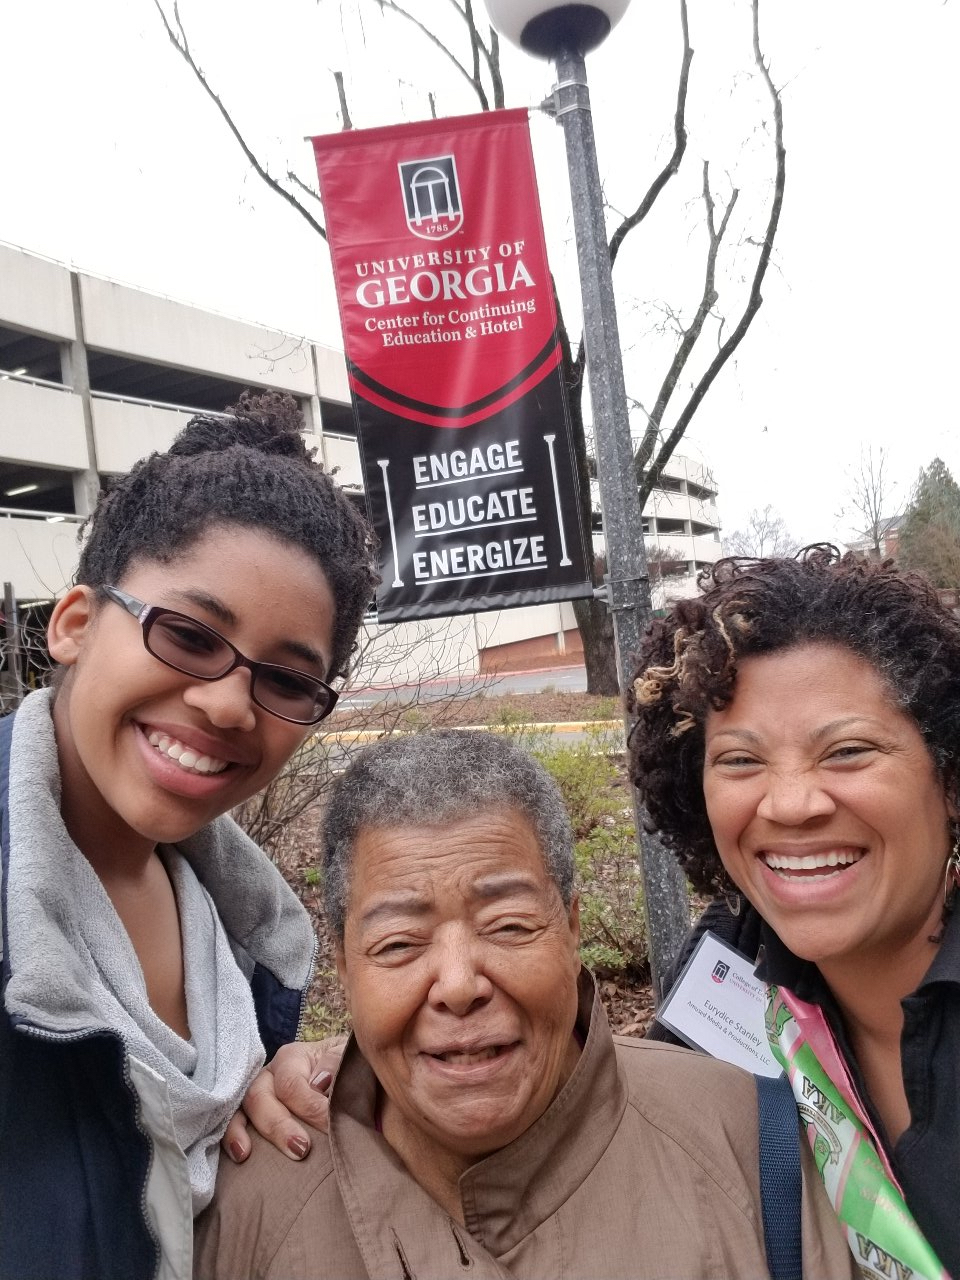 Elizabeth Eckford, Eurydice Stanley, and Grace Stanley at the University of Georgia